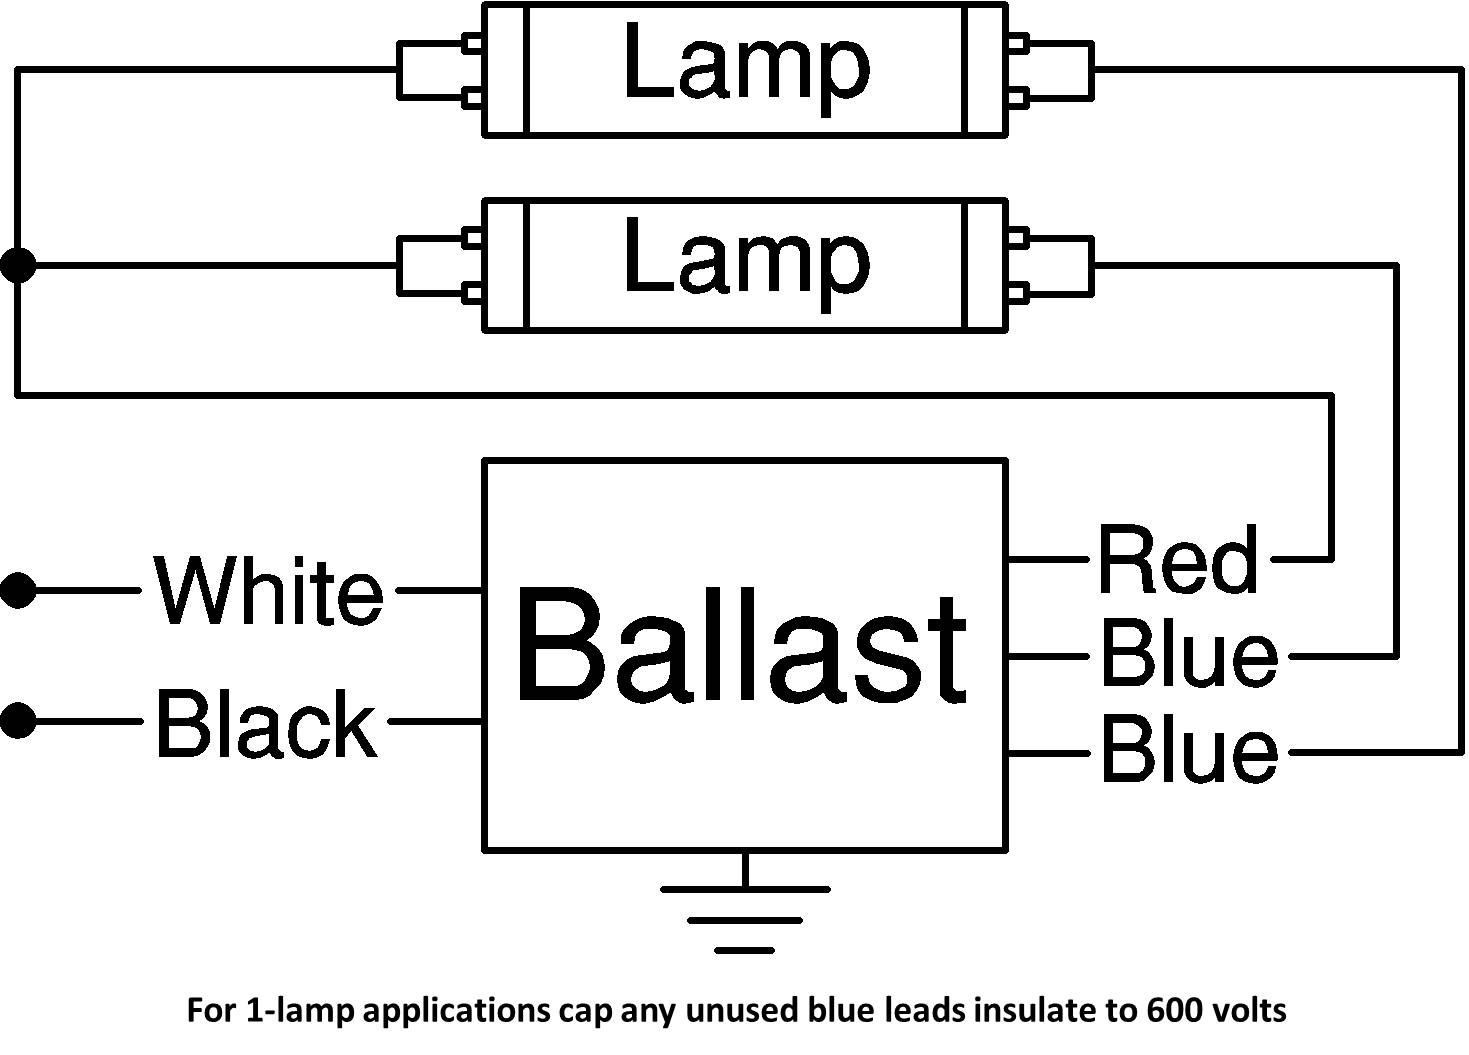 Ultramax Ballast Wiring Diagrams on fluorescent light ballast diagram, cnc machine control diagram, ballast control panel, fluorescent fixtures t5 circuit diagram, ballast installation, ballast connection diagrams, electronic ballast circuit diagram, ballast wire, ballast resistor purpose, ballast system, ballast ignitor schematic, engine cooling system diagram, ballast tank diagram, ballast regulator, ballast cross reference, hid ballast diagram, a c system diagram, ballast replacement diagram, trailer light diagram,